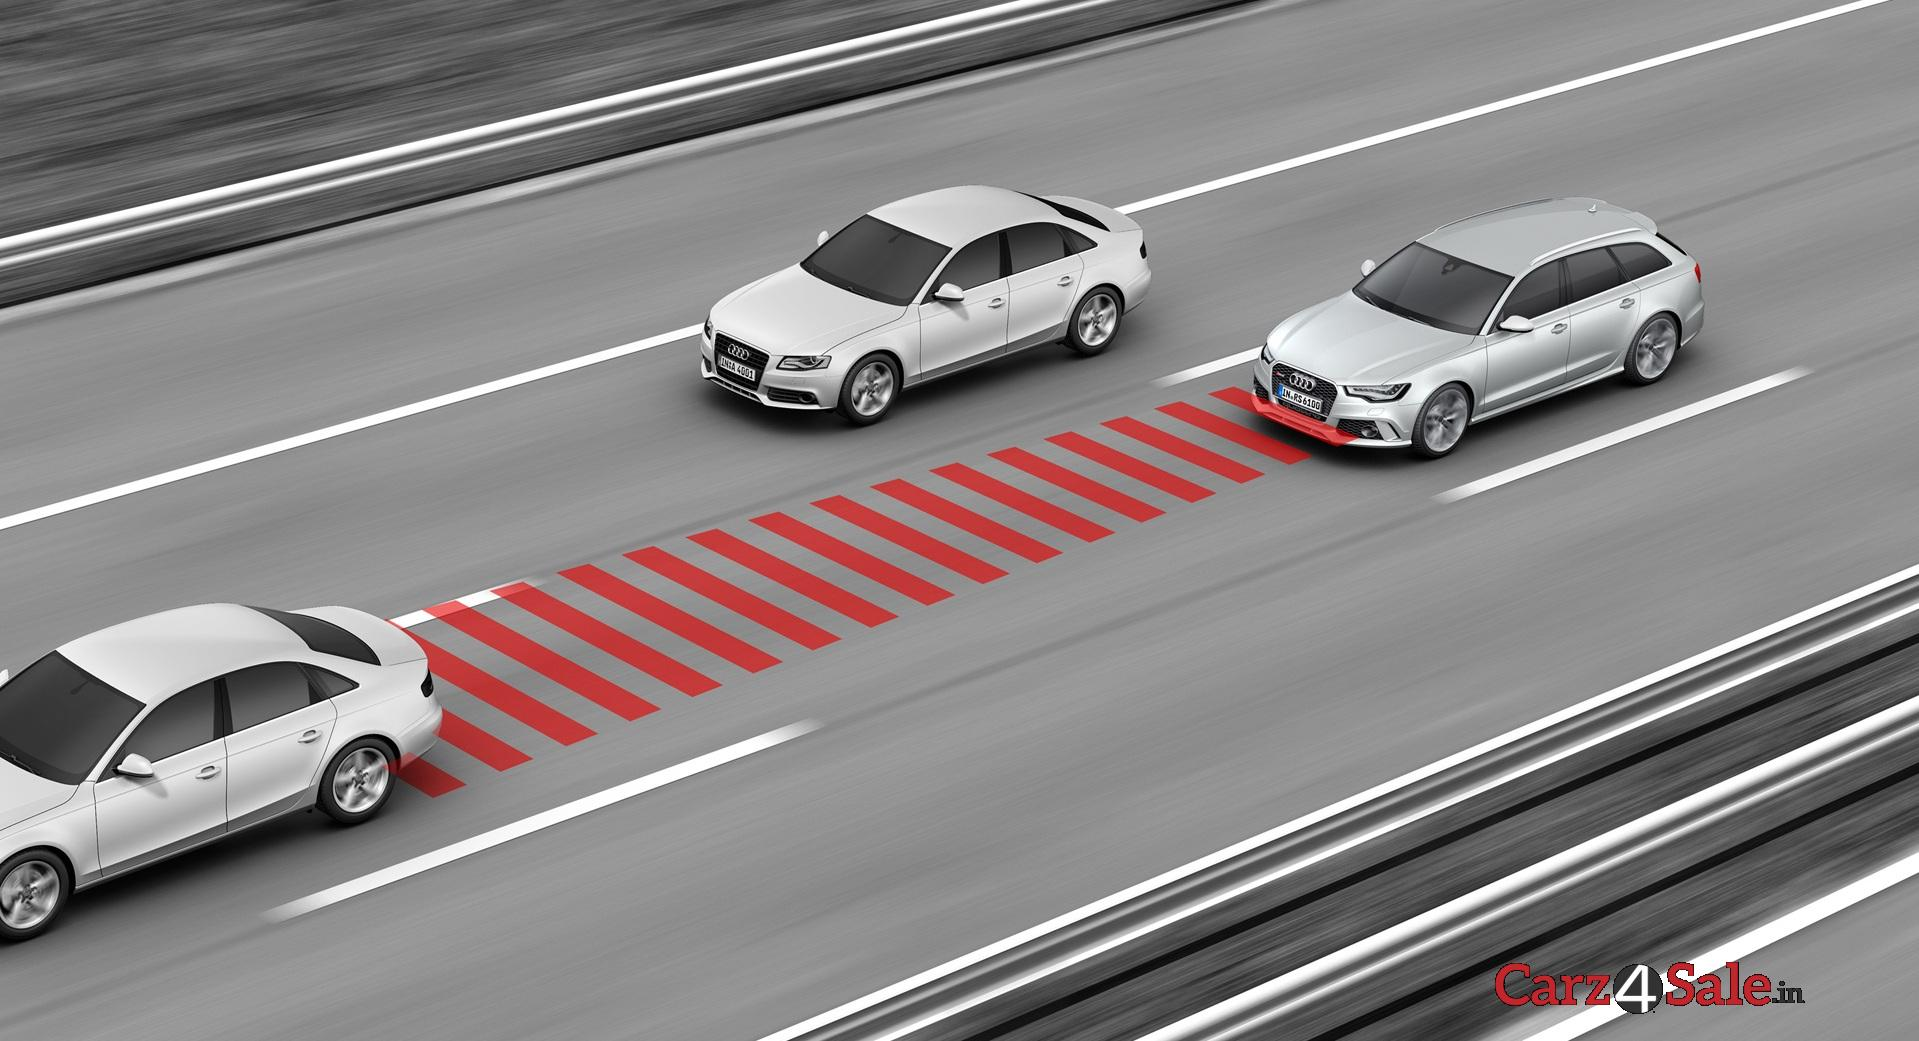 Adaptive Cruise Control On Highway